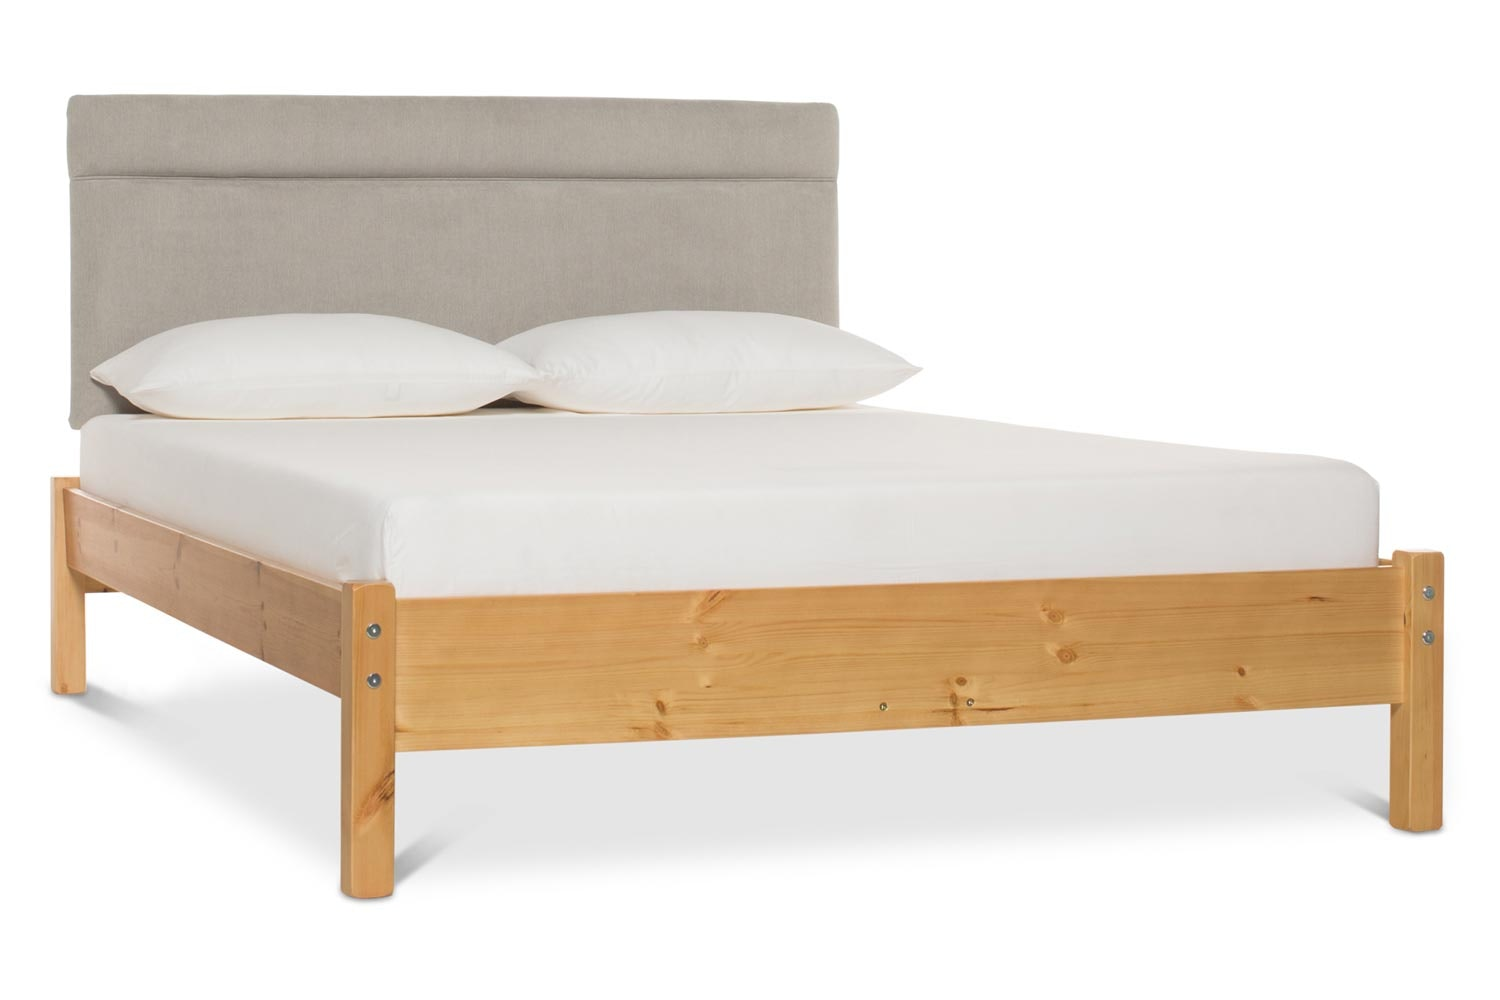 Emily Loft Natural Bed Frame | 5FT | Elton Headboard Silver